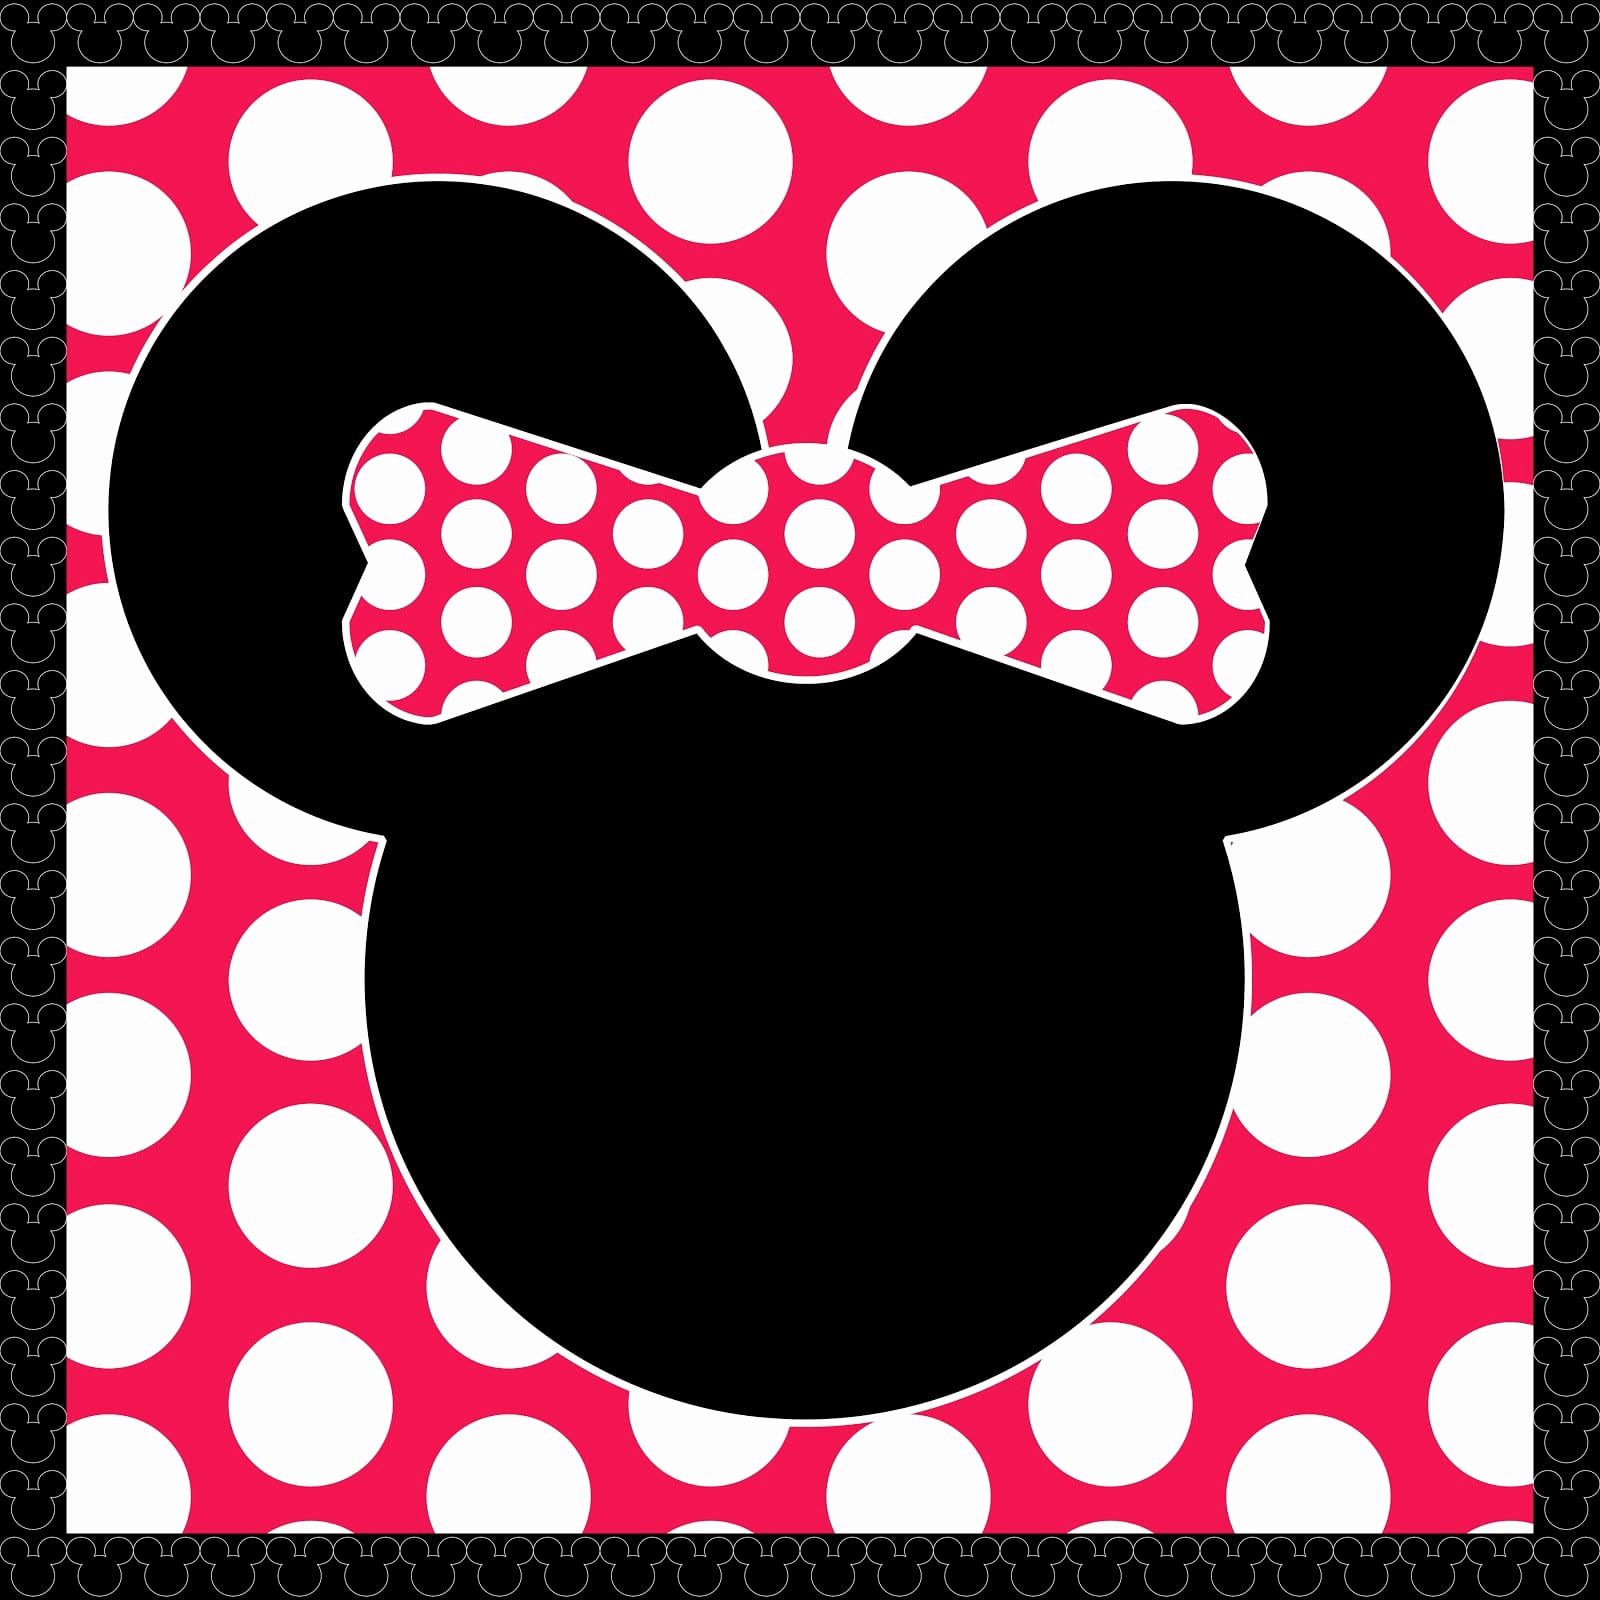 Minnie Mouse Invitation Template Online Inspirational Minnie Mouse Invitation Printable Template